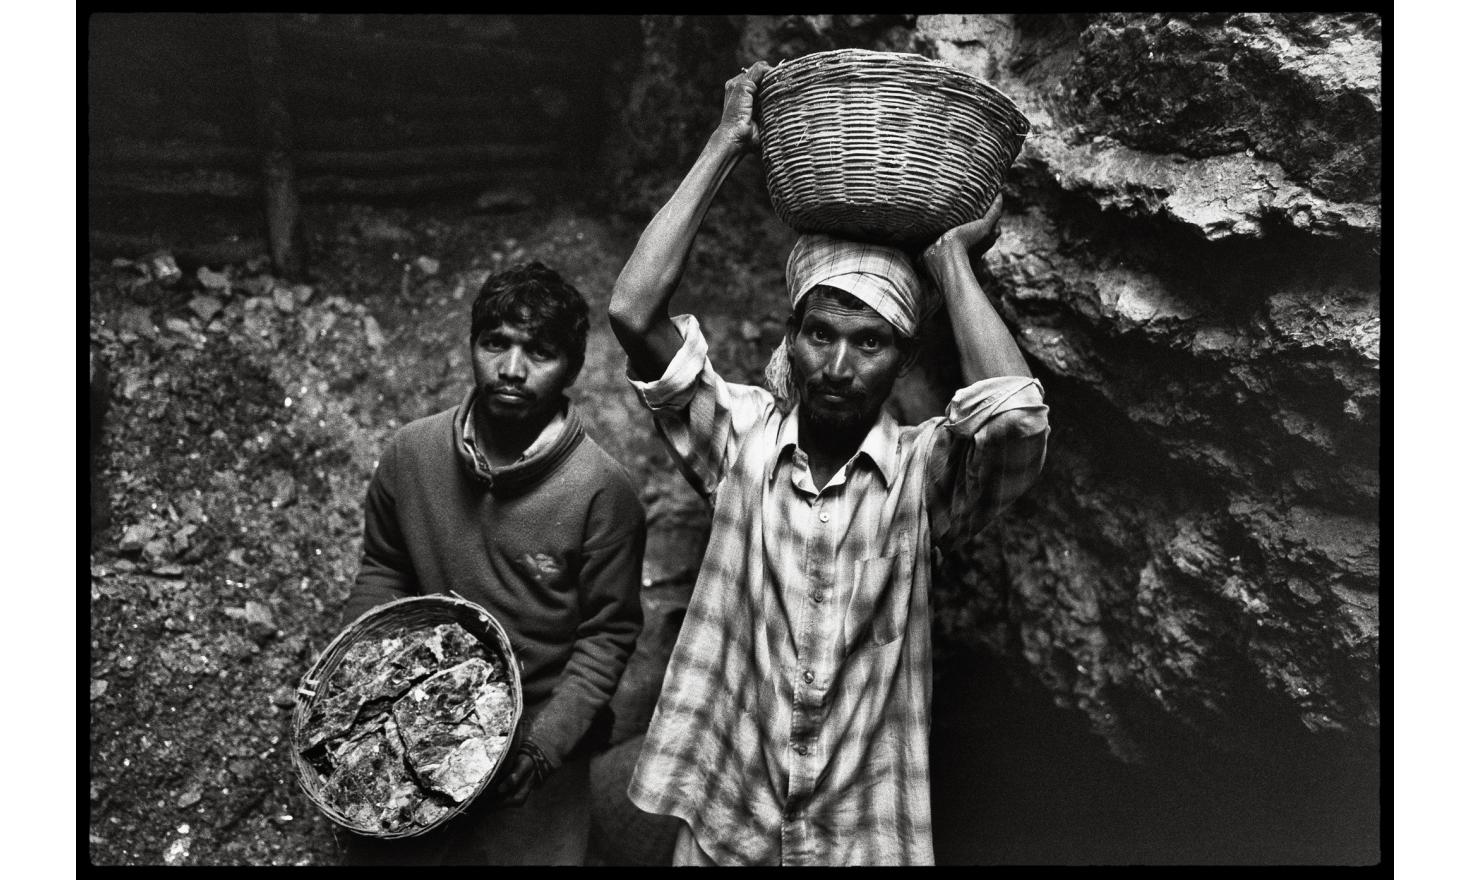 Jamuna Mines, Jharkhand, India Dispossessed ot their land by the Indian state, the Aborigines of the Koderma district are forced to work clandestinely in the mica mines to survive.